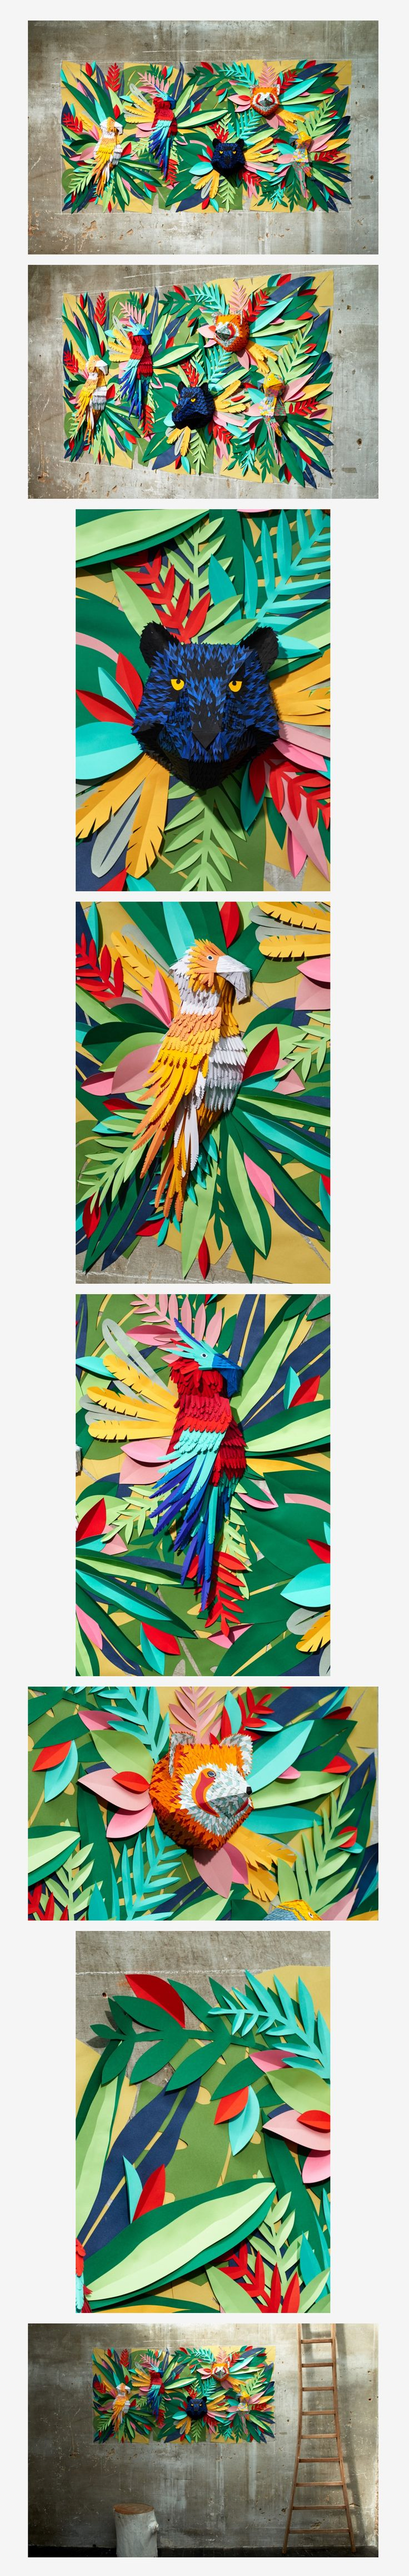 Mlle Hipolyte - Tropical Jungle Paper art / collage Brazil Olympics themed project for Arts Camp.